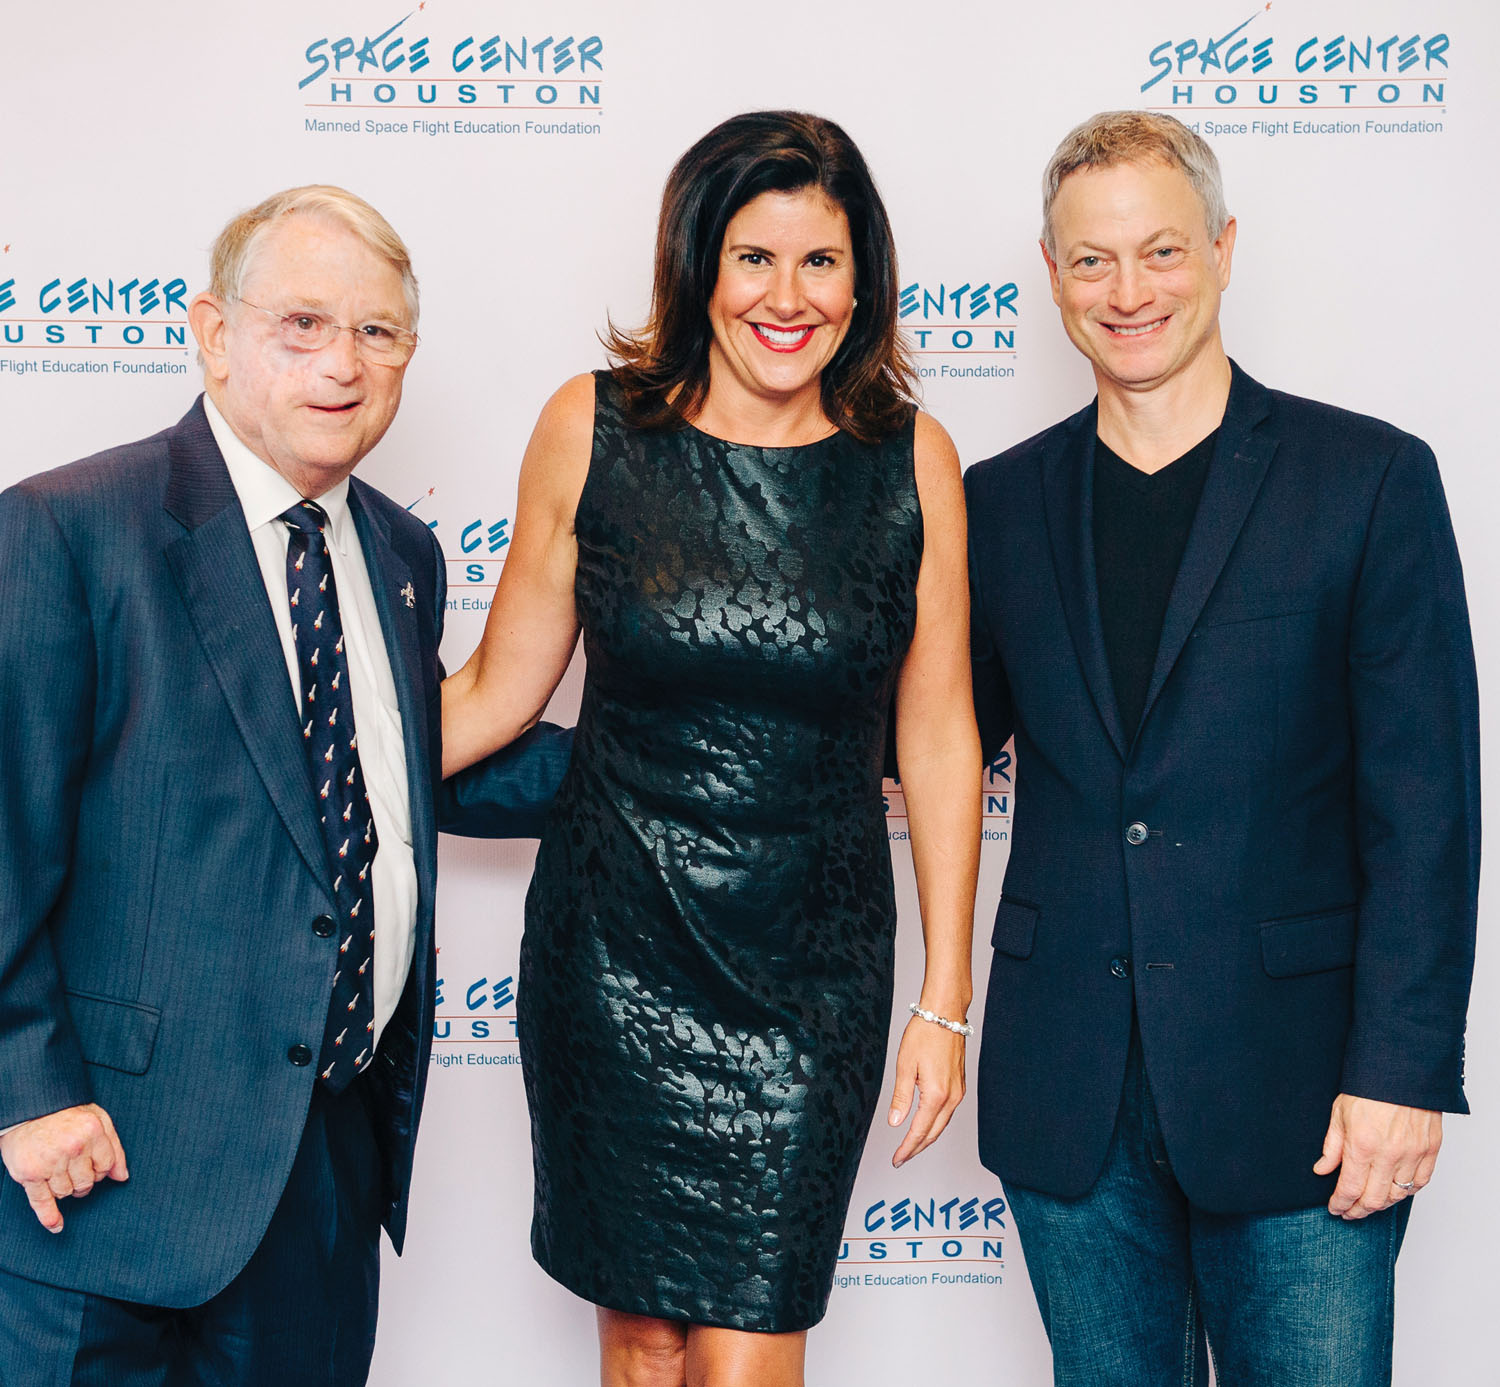 Developer Fred Griffin. left, a Manned Space Flight Education Foundation board member, and his assistant, Heather Waters, meet award-winning actor Gary Sinise at Space Center Houston's inaugural Galaxy Gala.